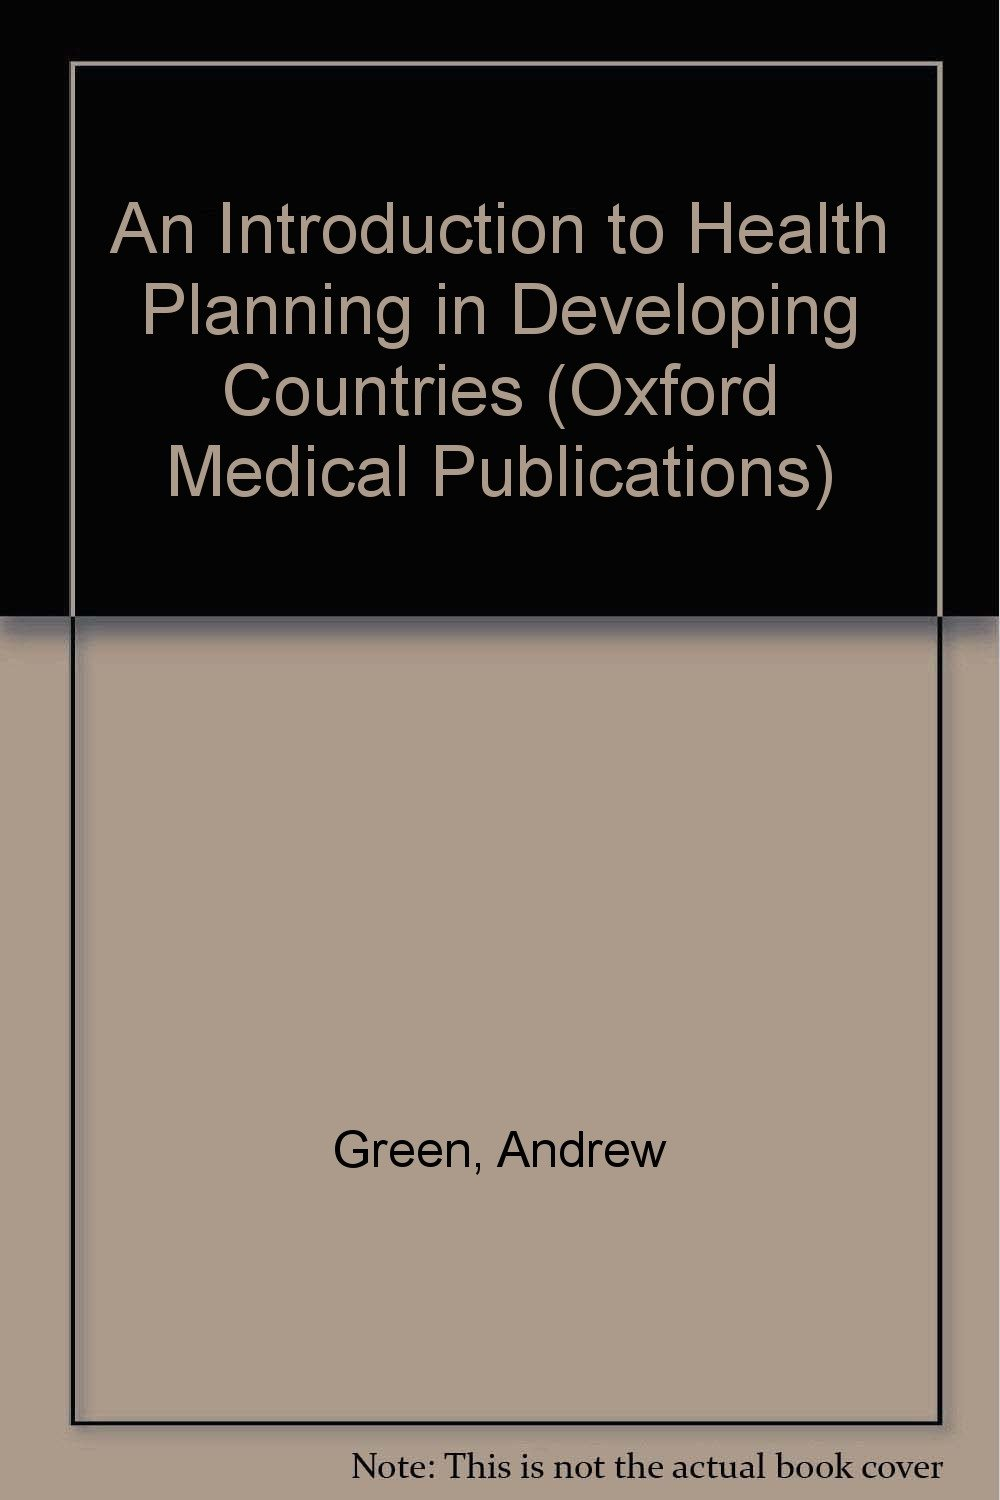 an introduction to health planning in developing countries oxford